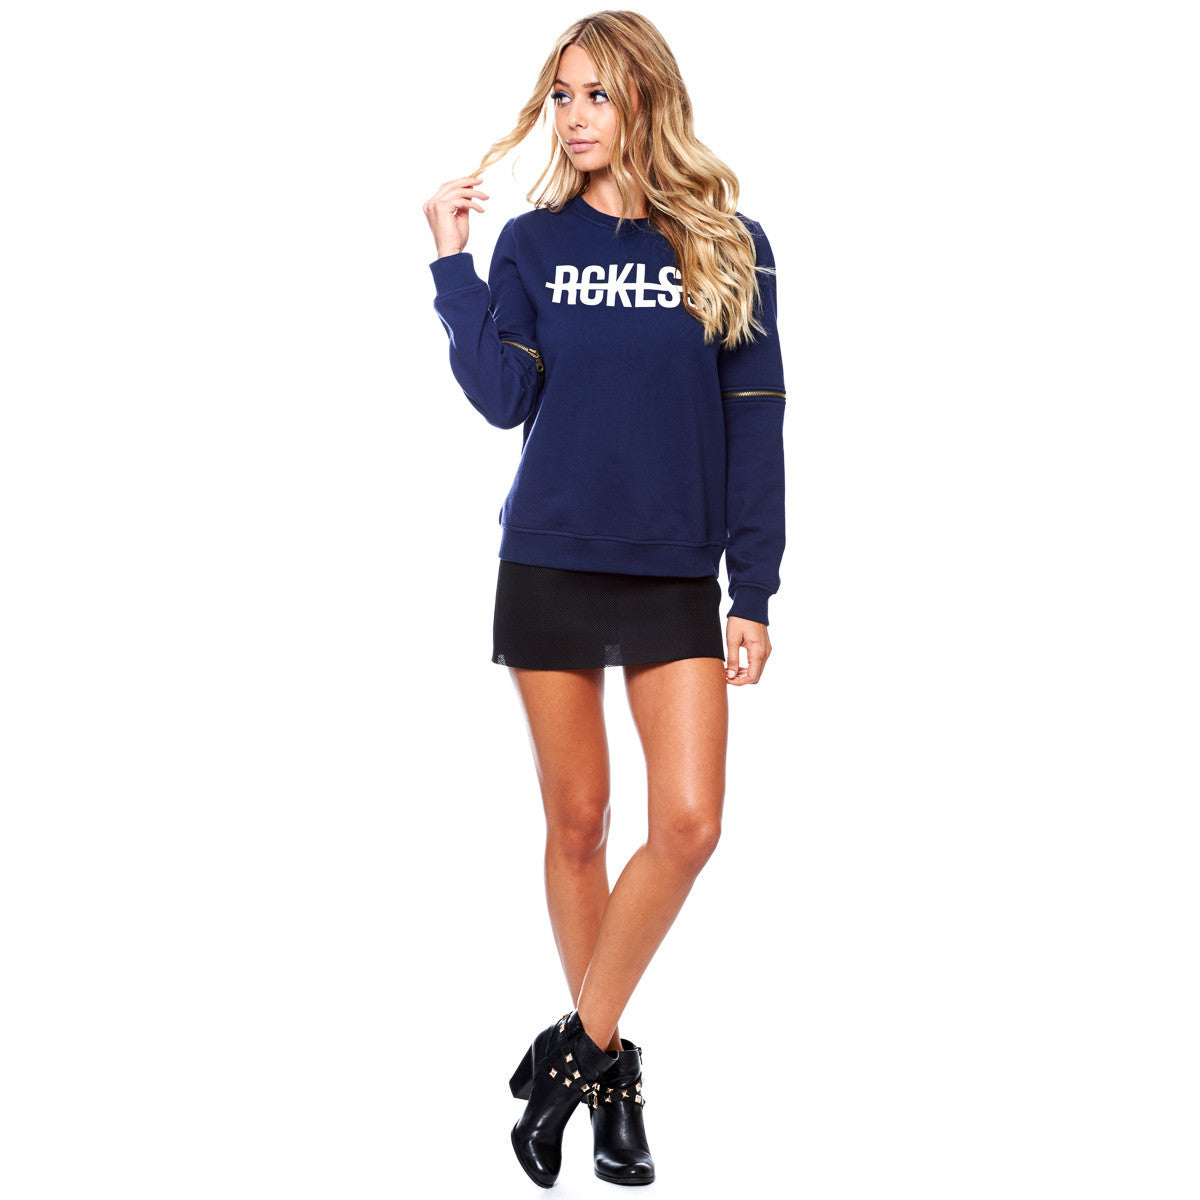 Come Thru, , Girls Crew Zippper Fleece, Young And Reckless, Young And Reckless - 2